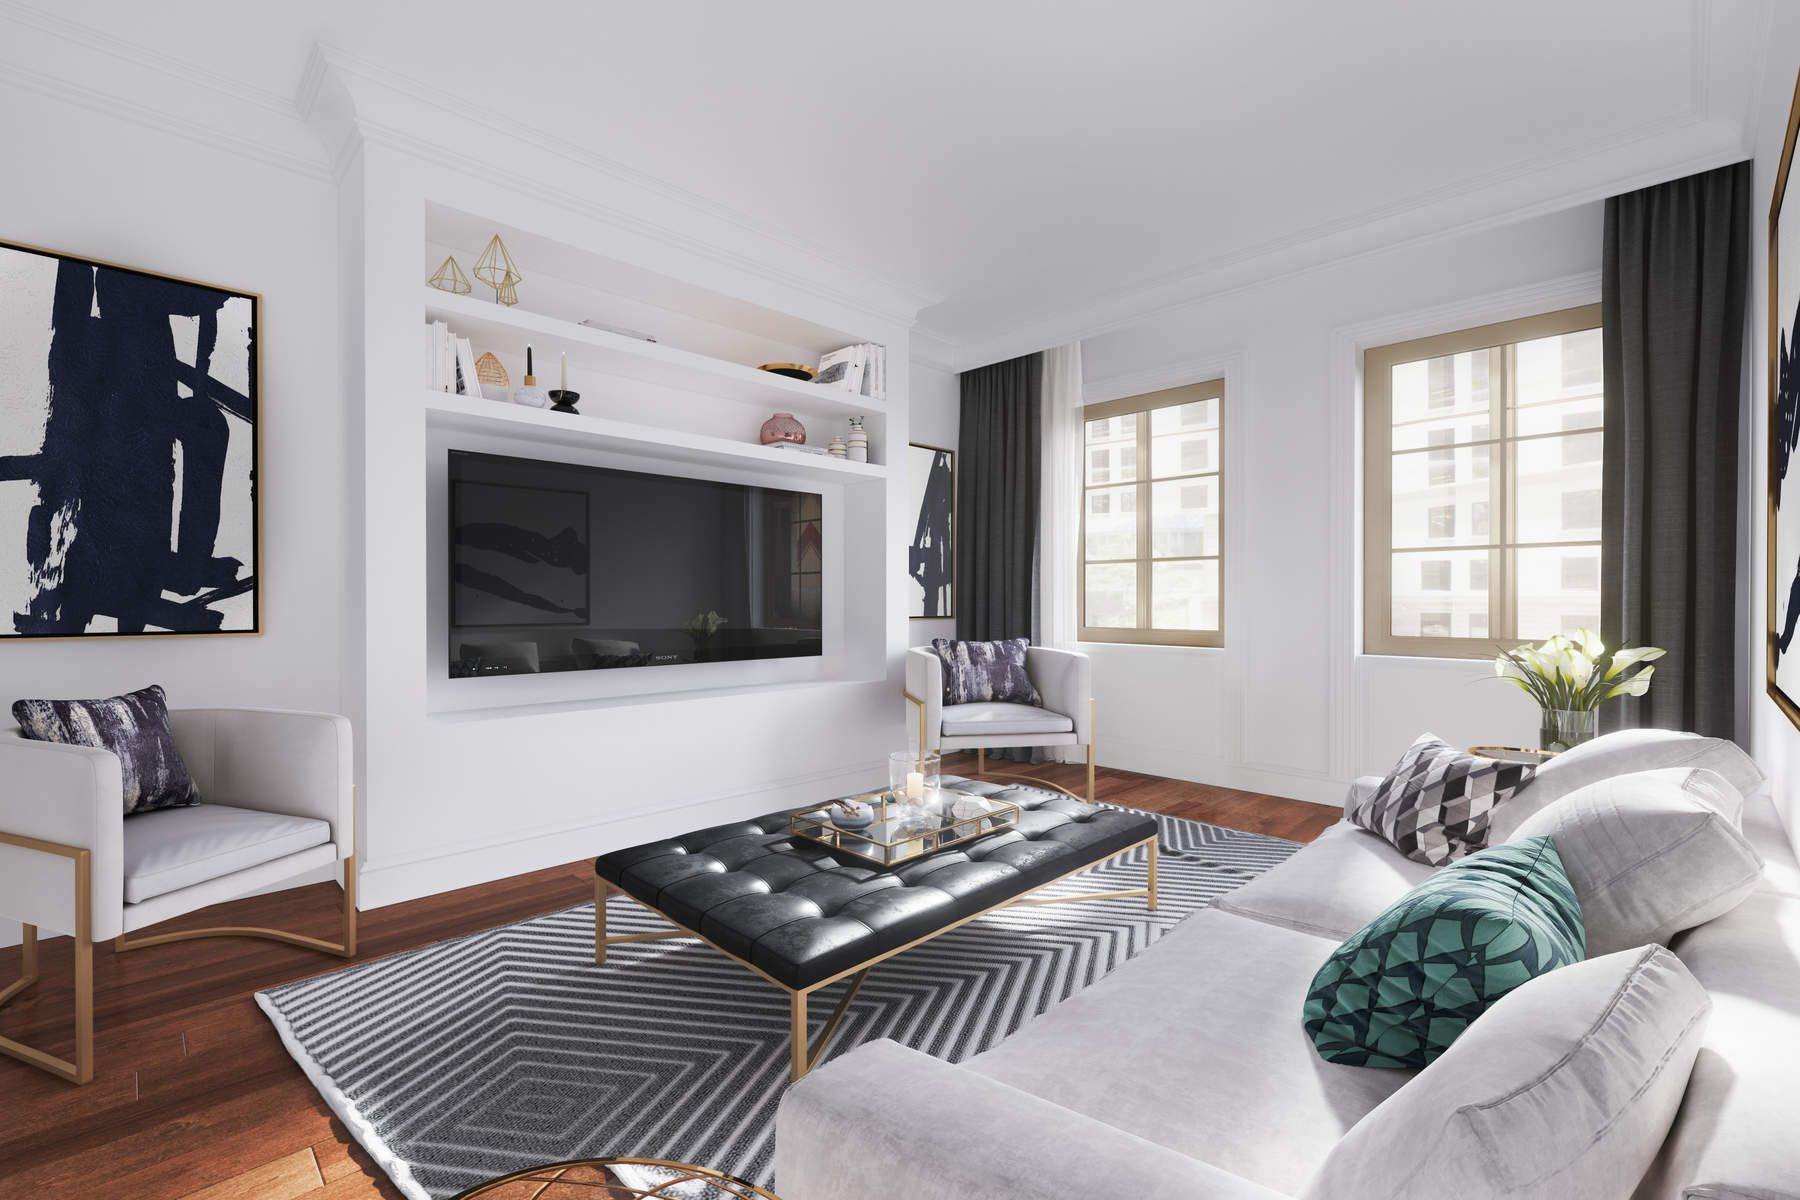 Additional photo for property listing at An Historic Moment 34 East 62nd Street New York, New York 10065 United States